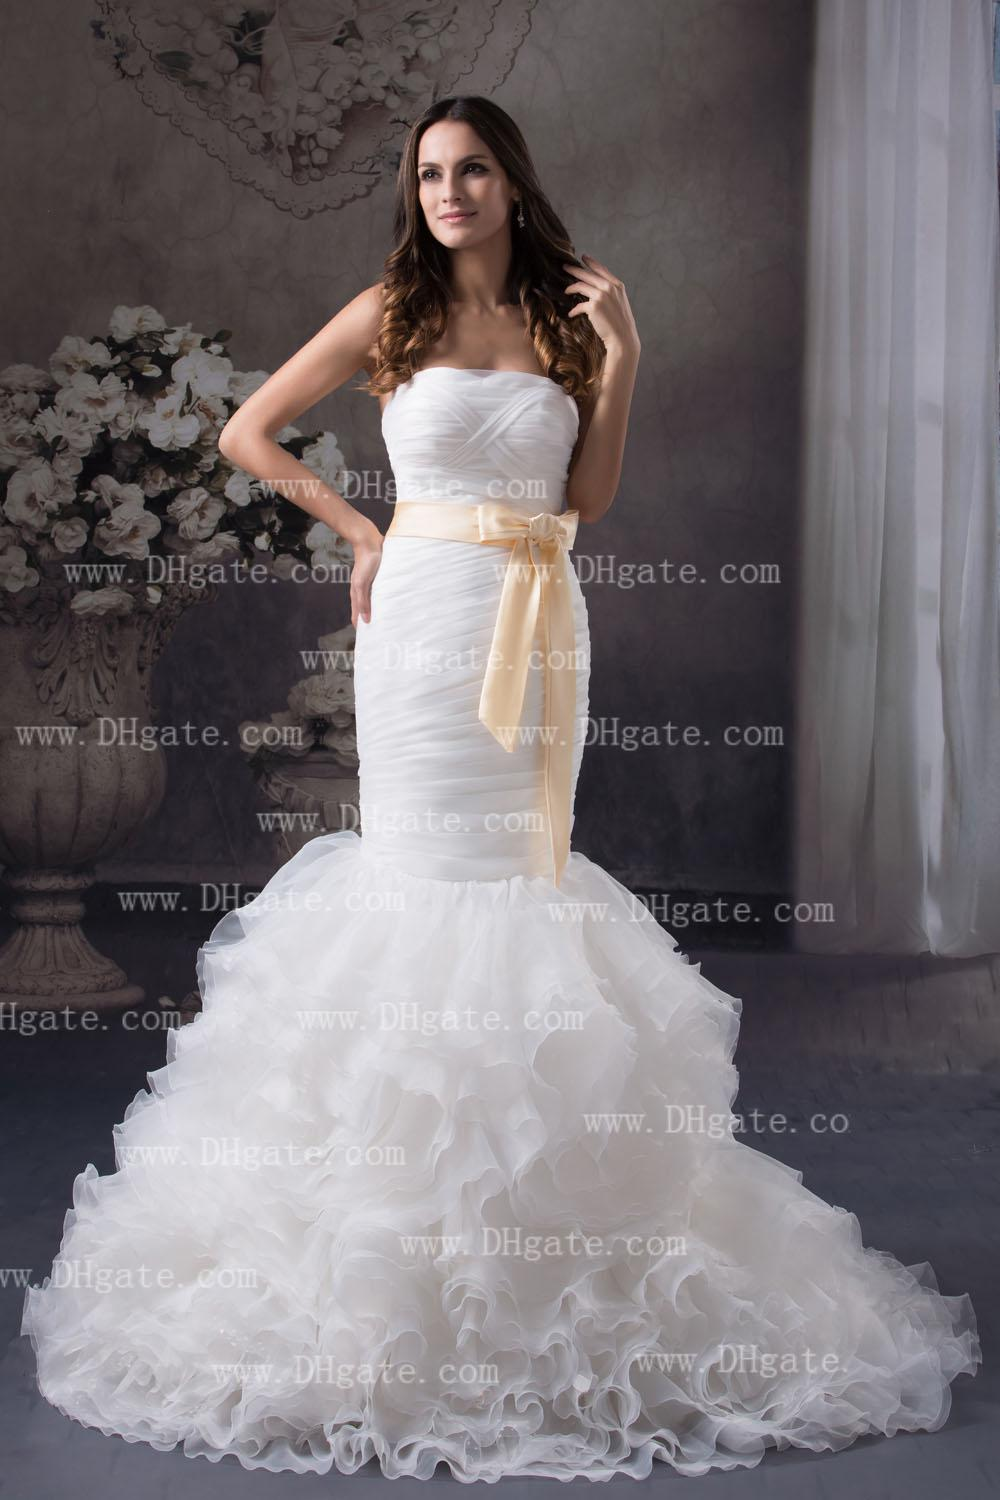 White Mermaid Wedding Dress Strapless Pleated Ruching Bodice With